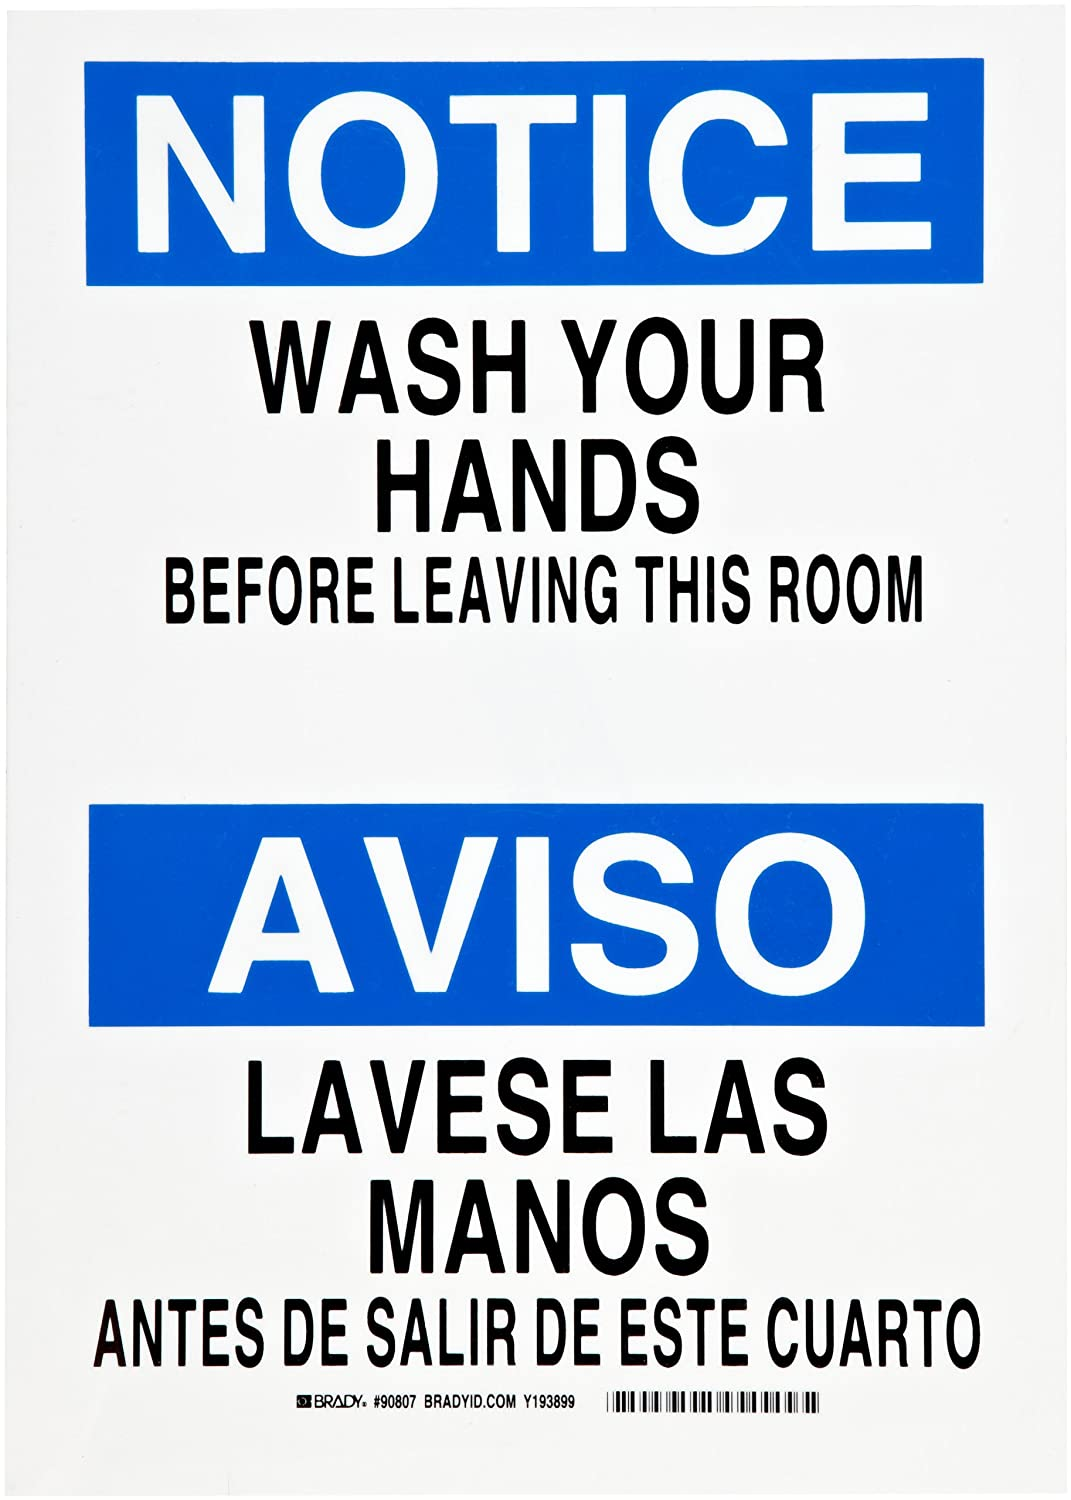 "Brady 90807 10"" Width x 14"" Height B-302 Polyester, Black and Blue on White Bilingual Sign, English and Spanish, Header ""Notice/Aviso"", Legend ""Wash Your Hands Before Leaving this Room/Lavese las Manos Antes de Salir de Este Cuarto"""